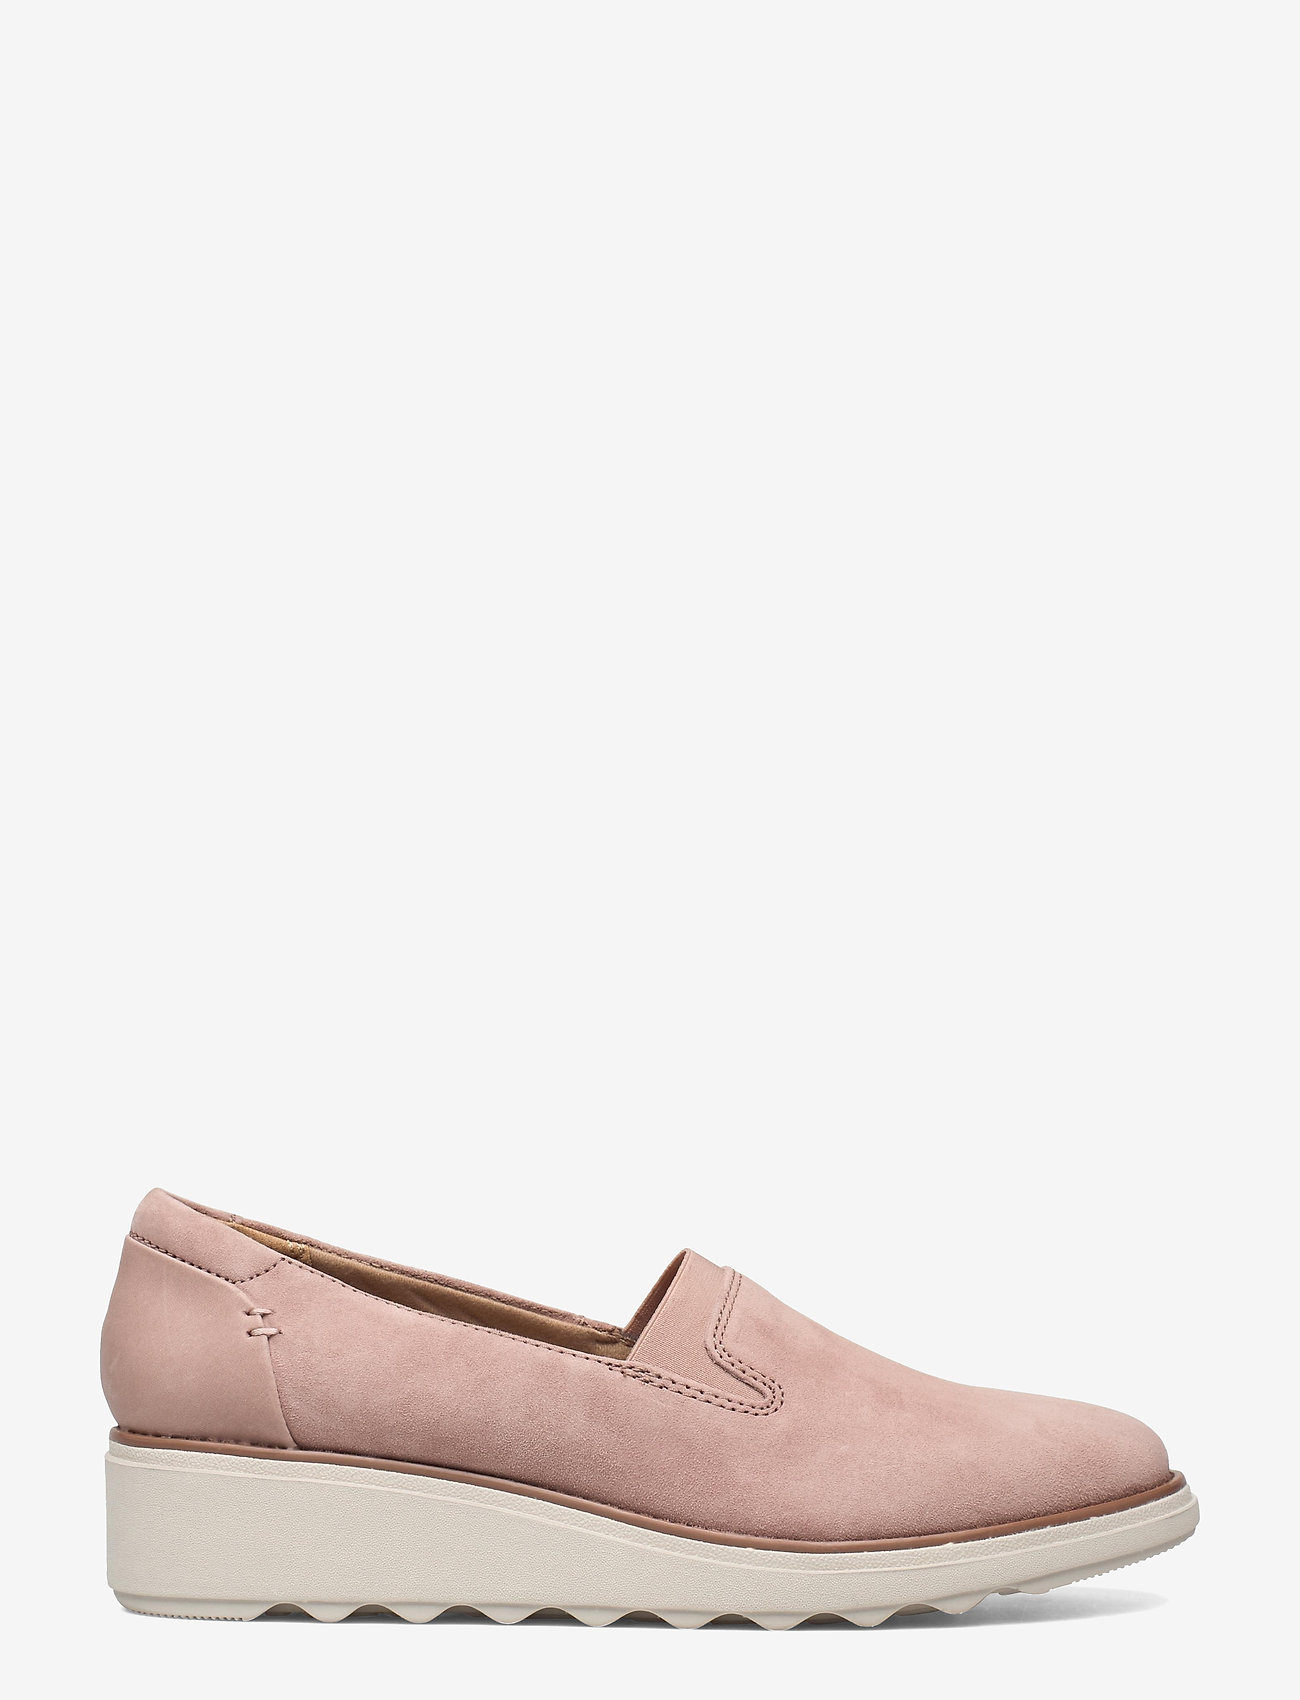 Clarks - Sharon Dolly - slip-on sneakers - dusty pink - 1